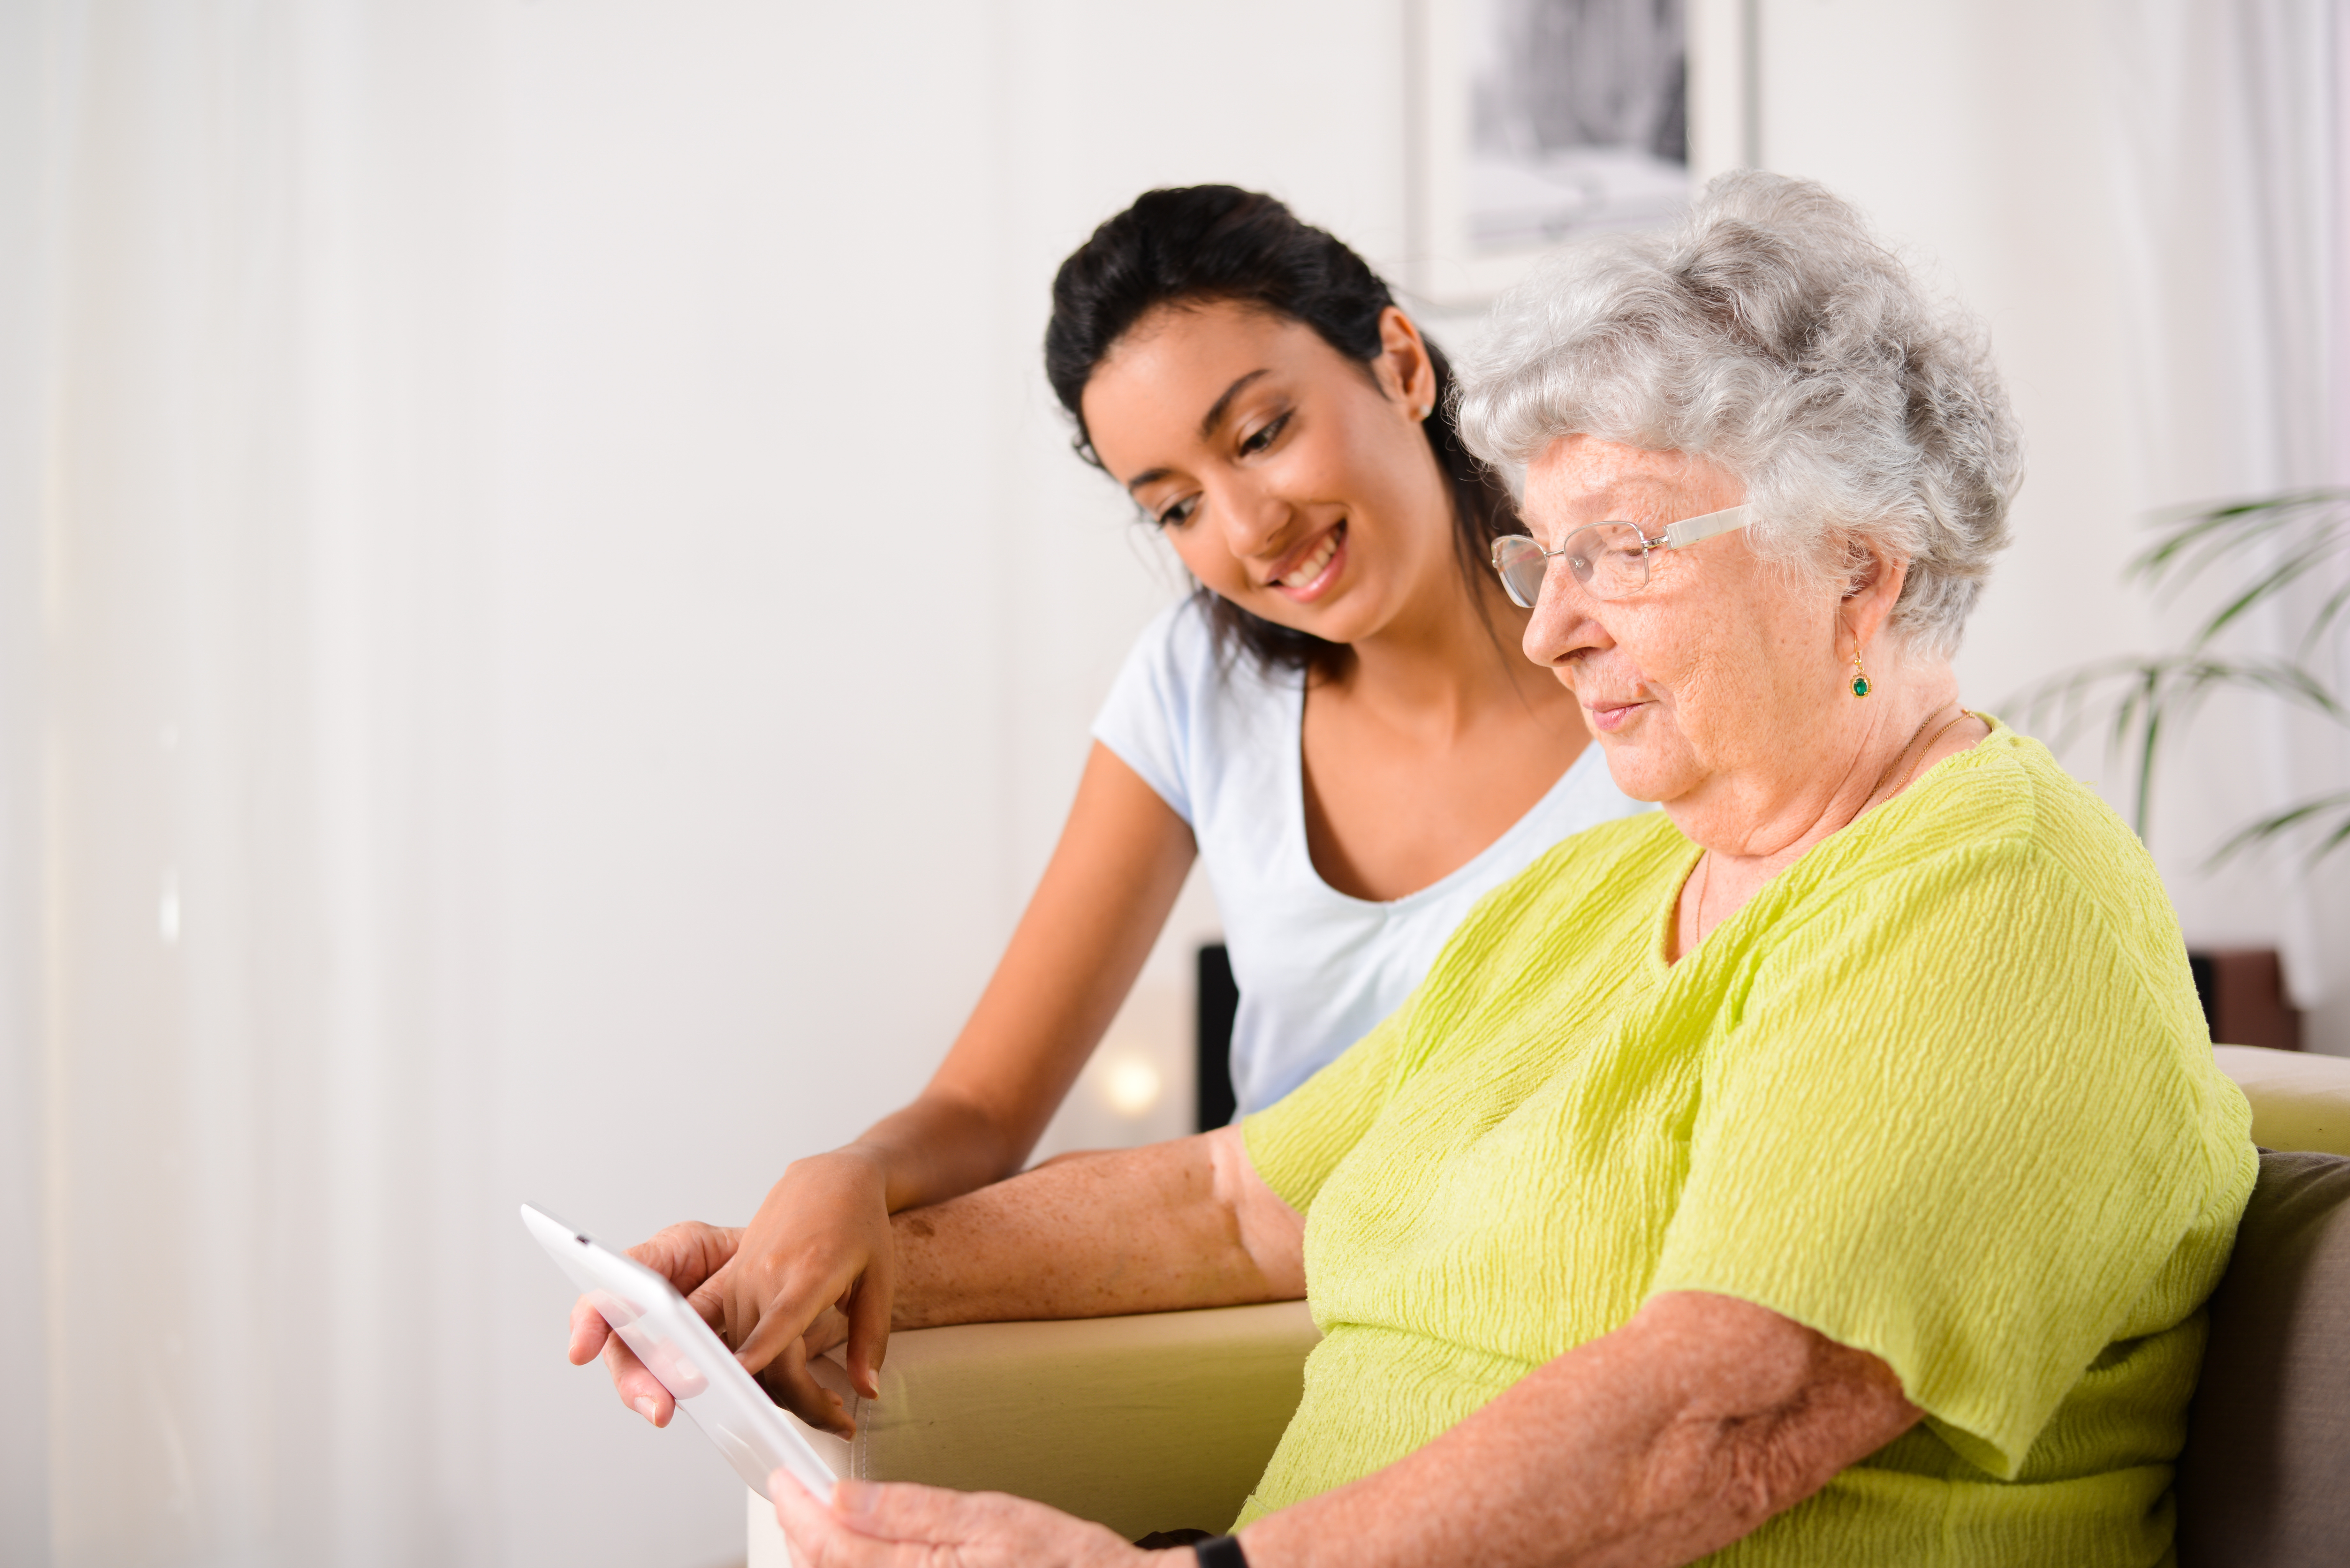 a discussion on the treatment of older people